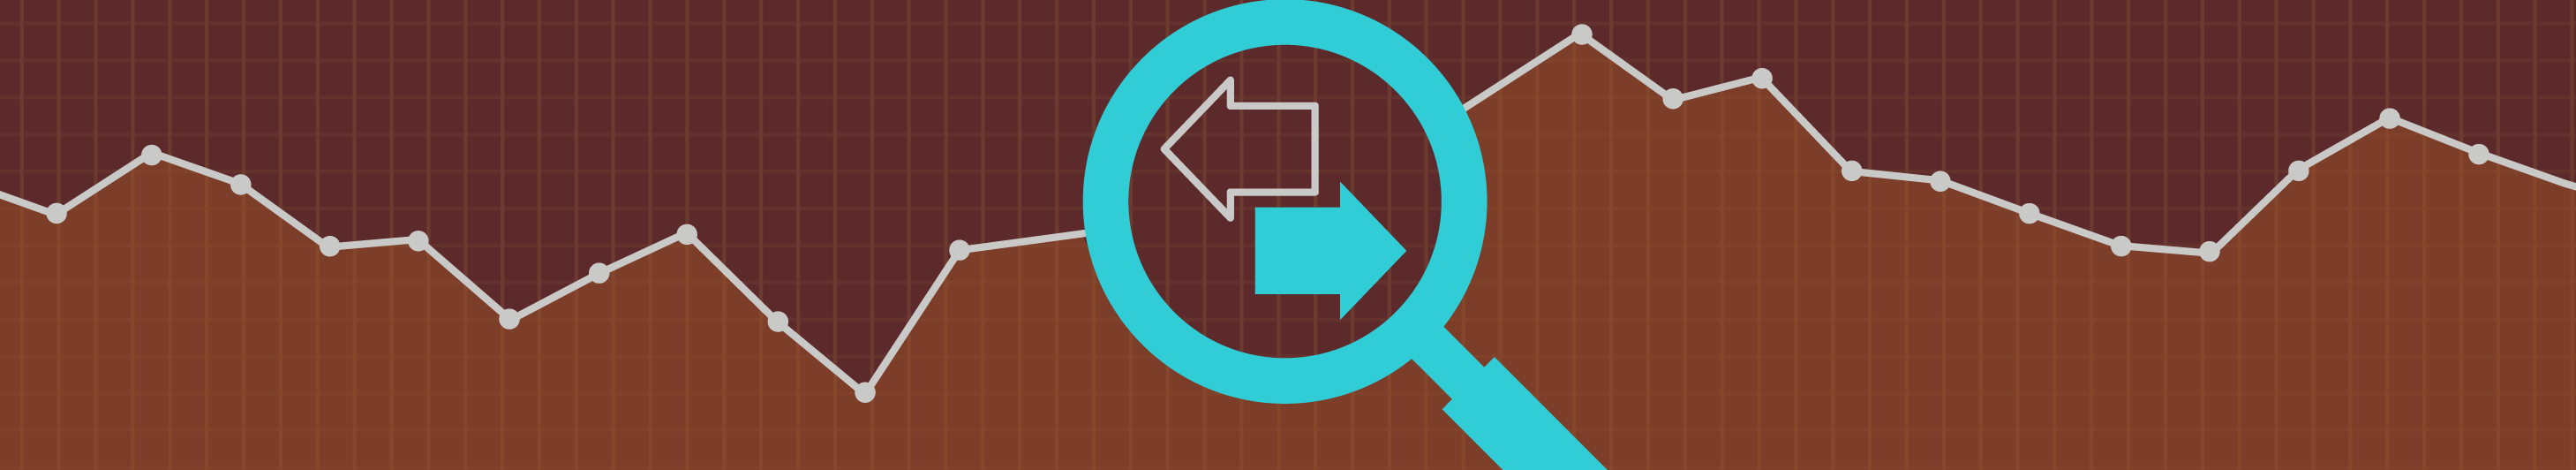 illustration of magnifying glass on brown background